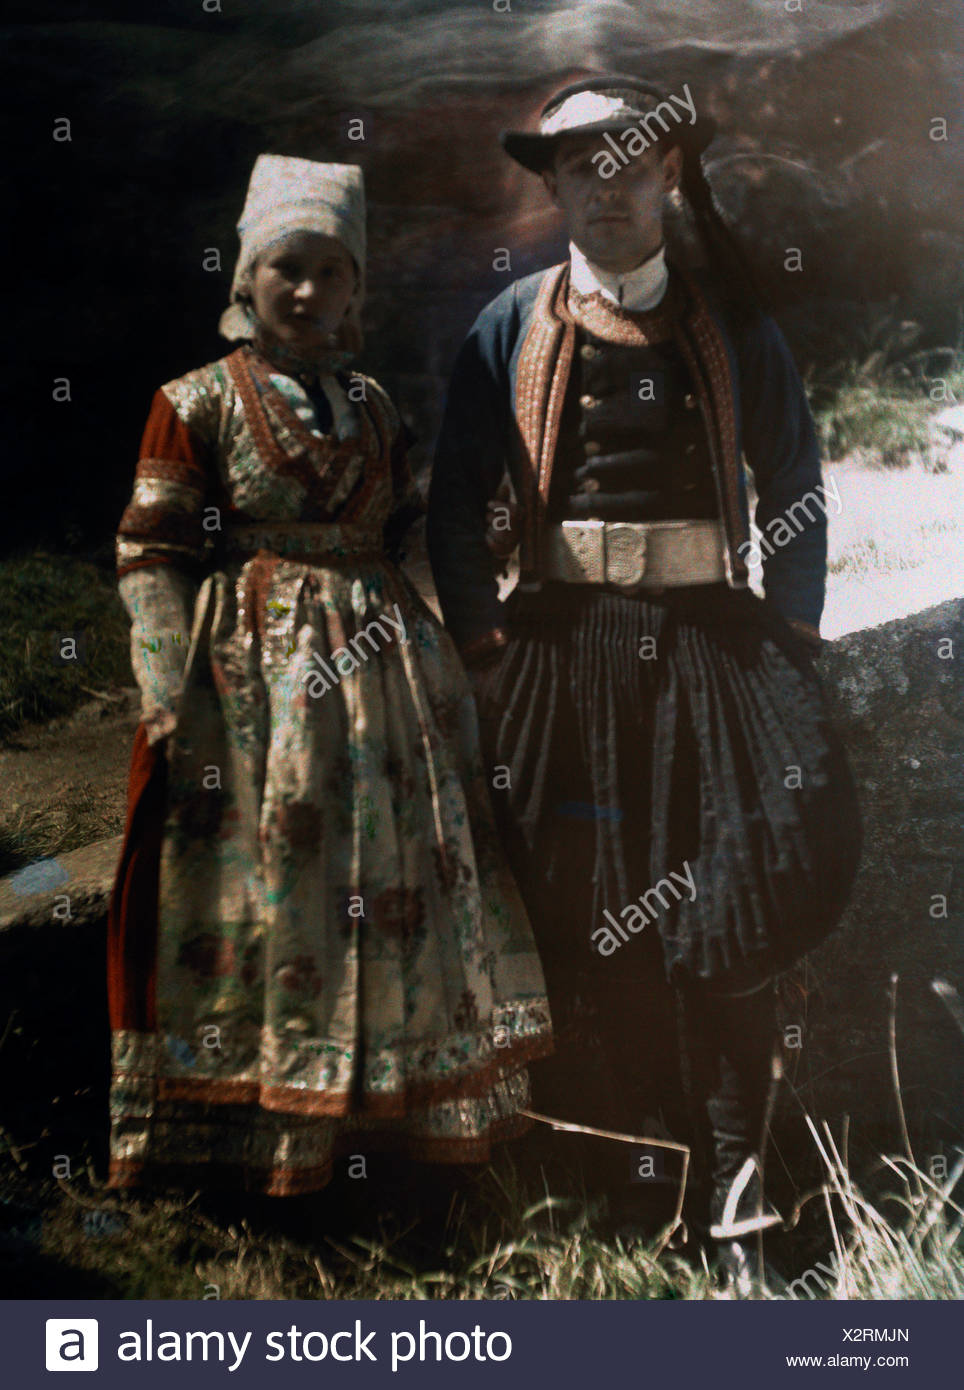 A man and a woman pose in award-winning 1830's costumes. - Stock Image